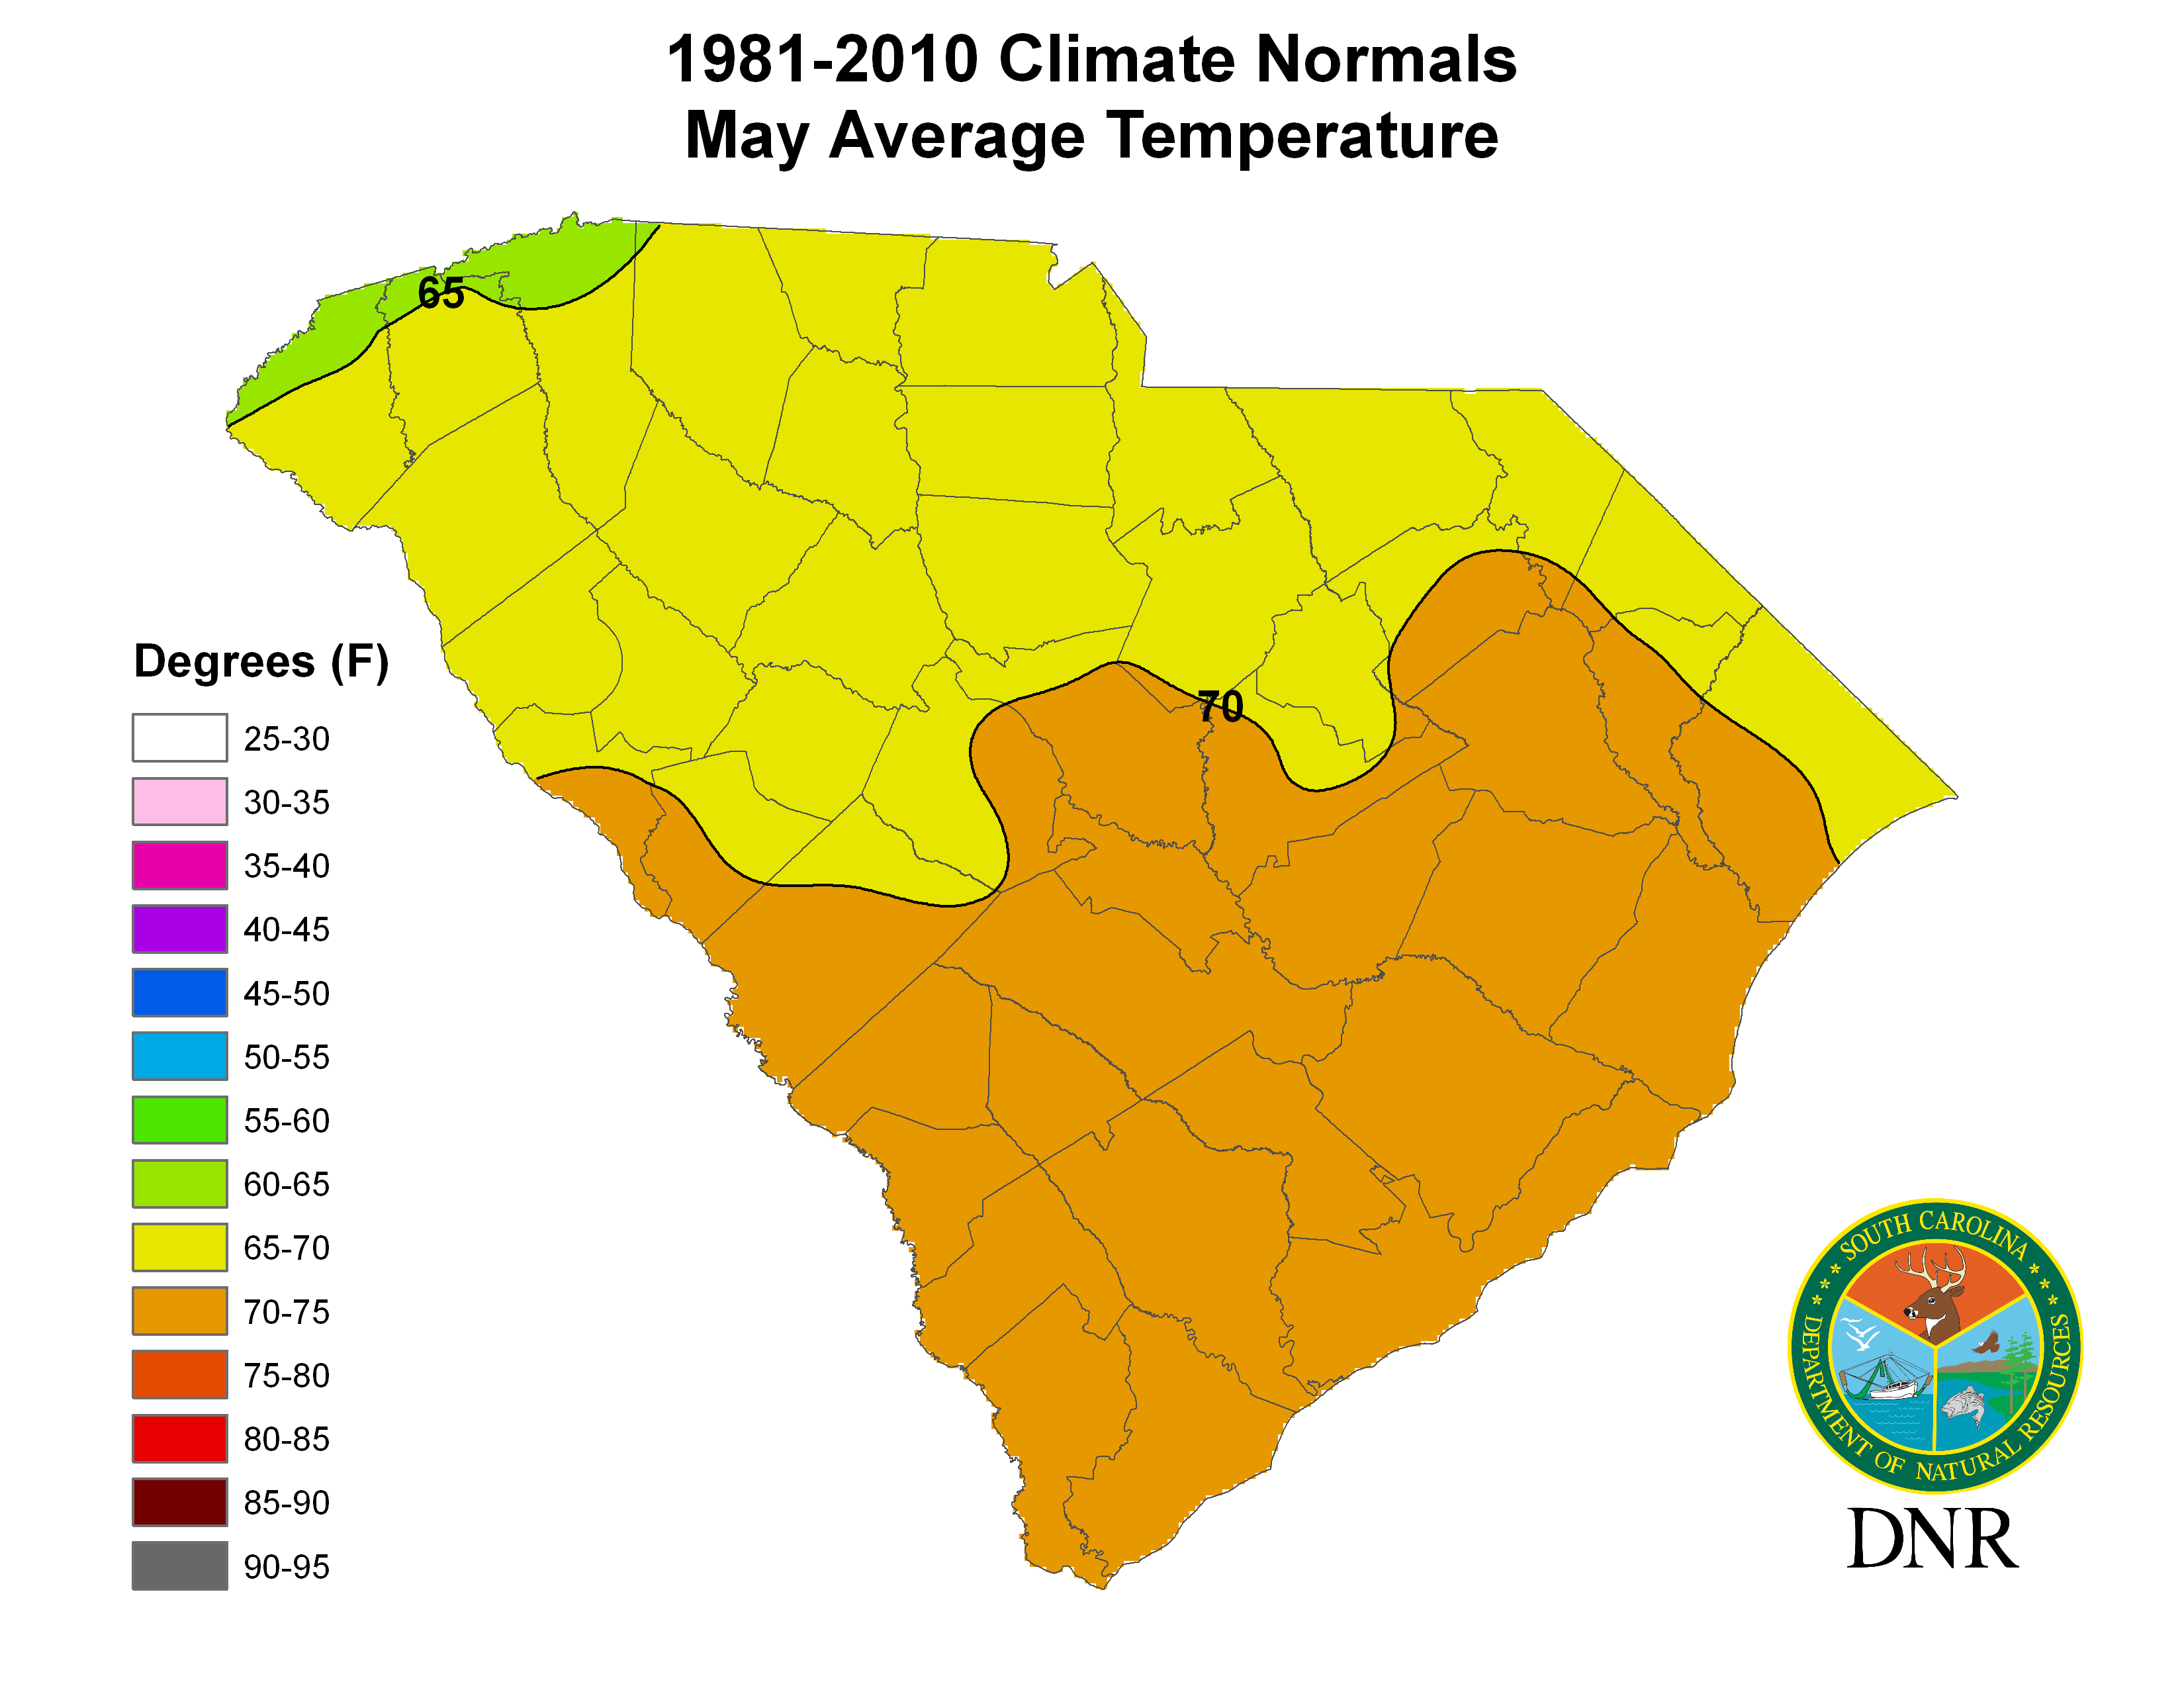 South Carolina State Climatology Office - Dnr topo maps